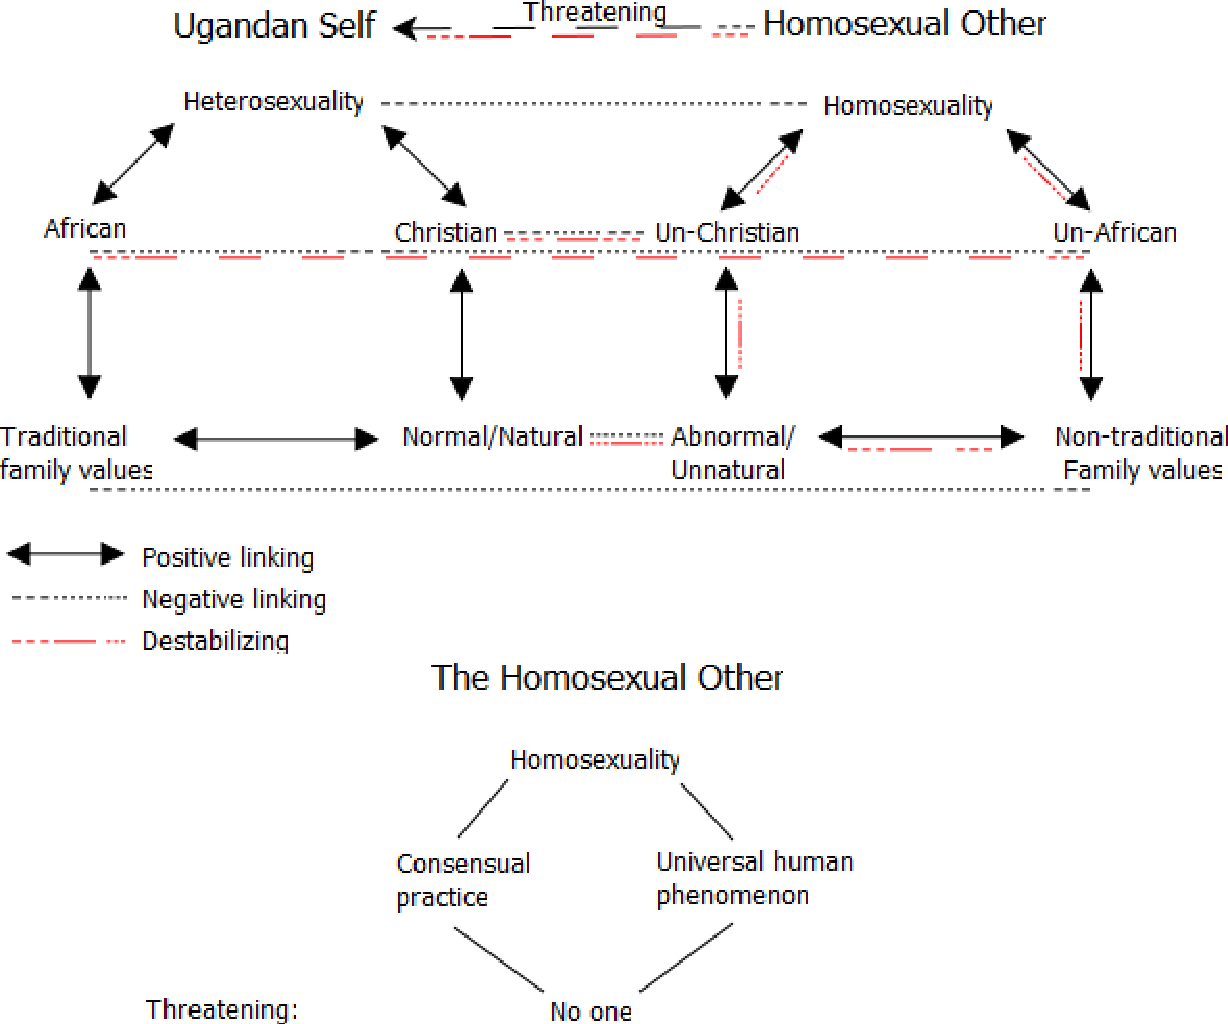 The Securitization of Homosexuality in Uganda  The